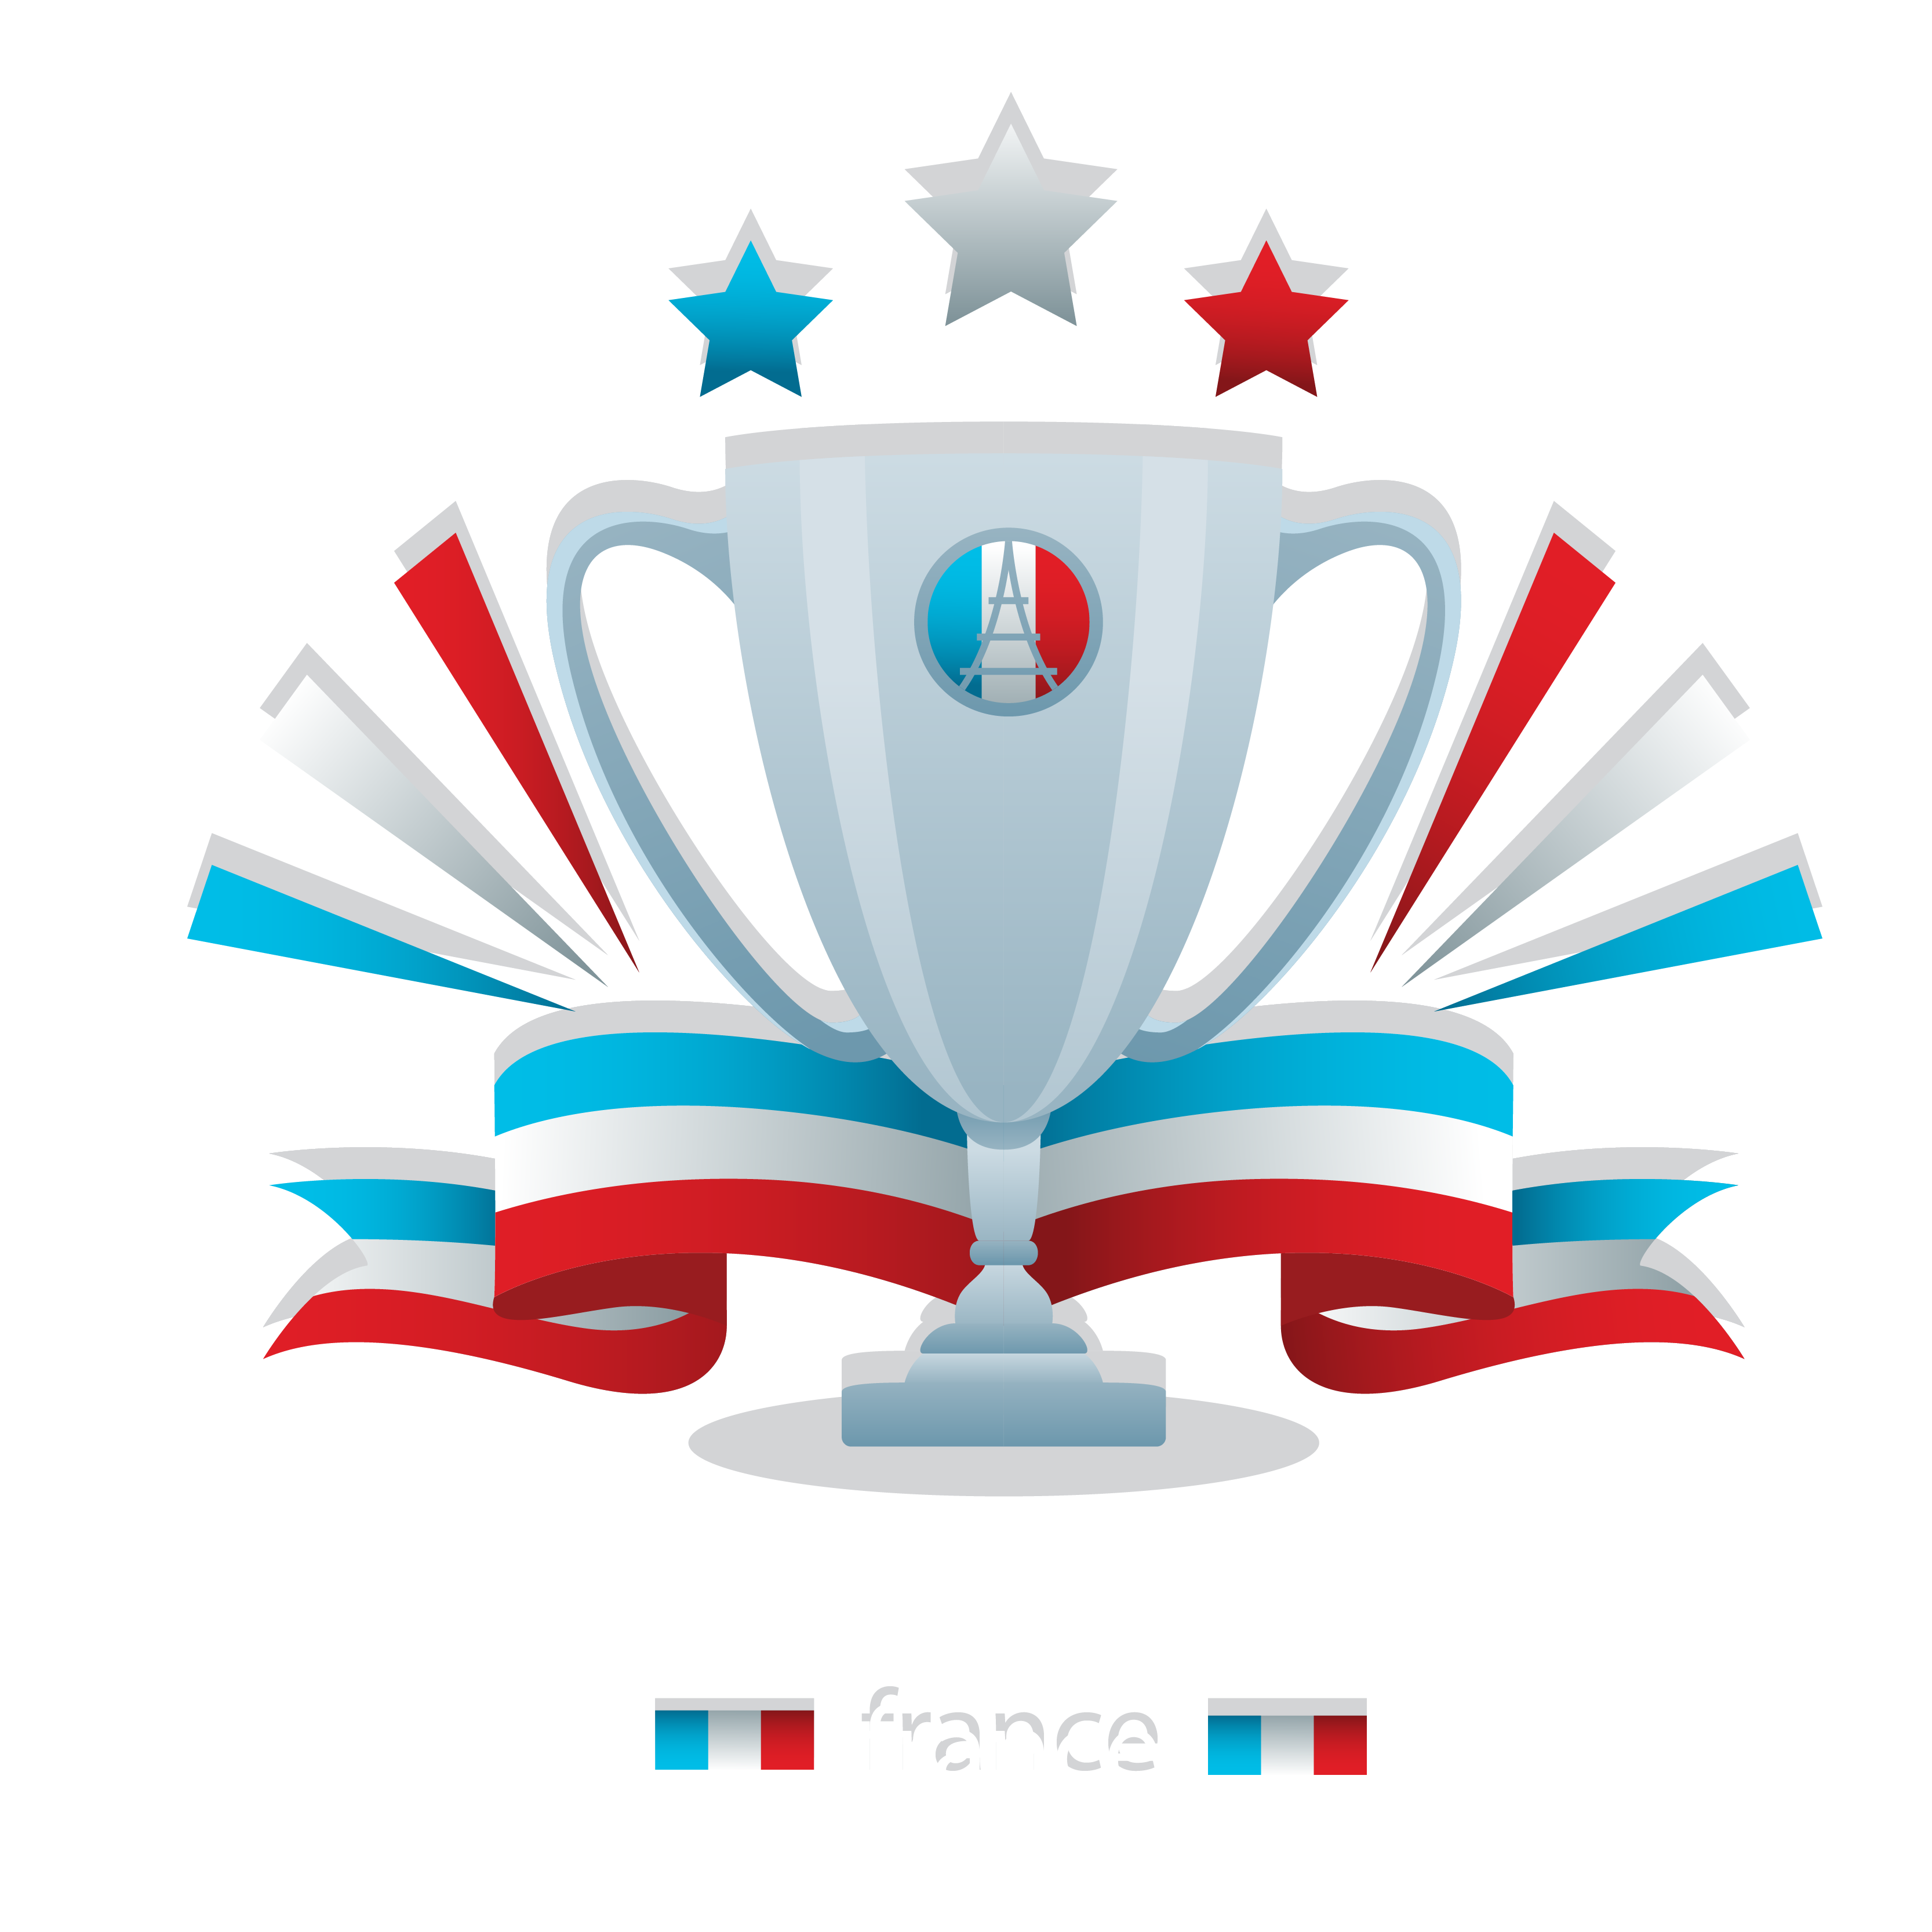 Olympics clipart trophy. Cup rio olympic transprent